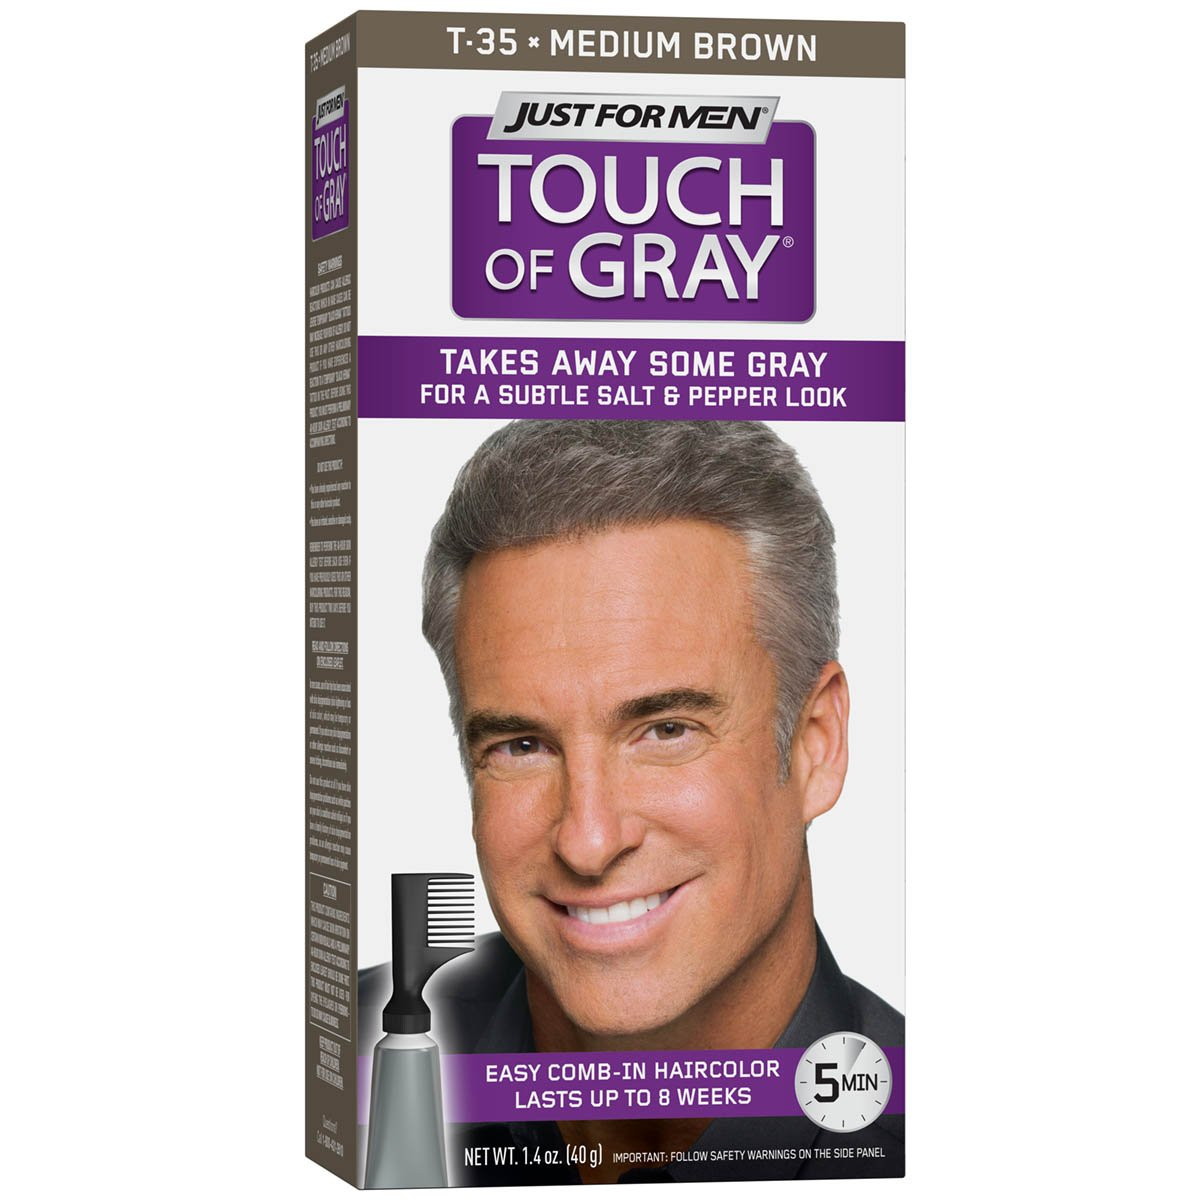 Just For Men Touch of Gray Men's Hair Color, Medium Brown